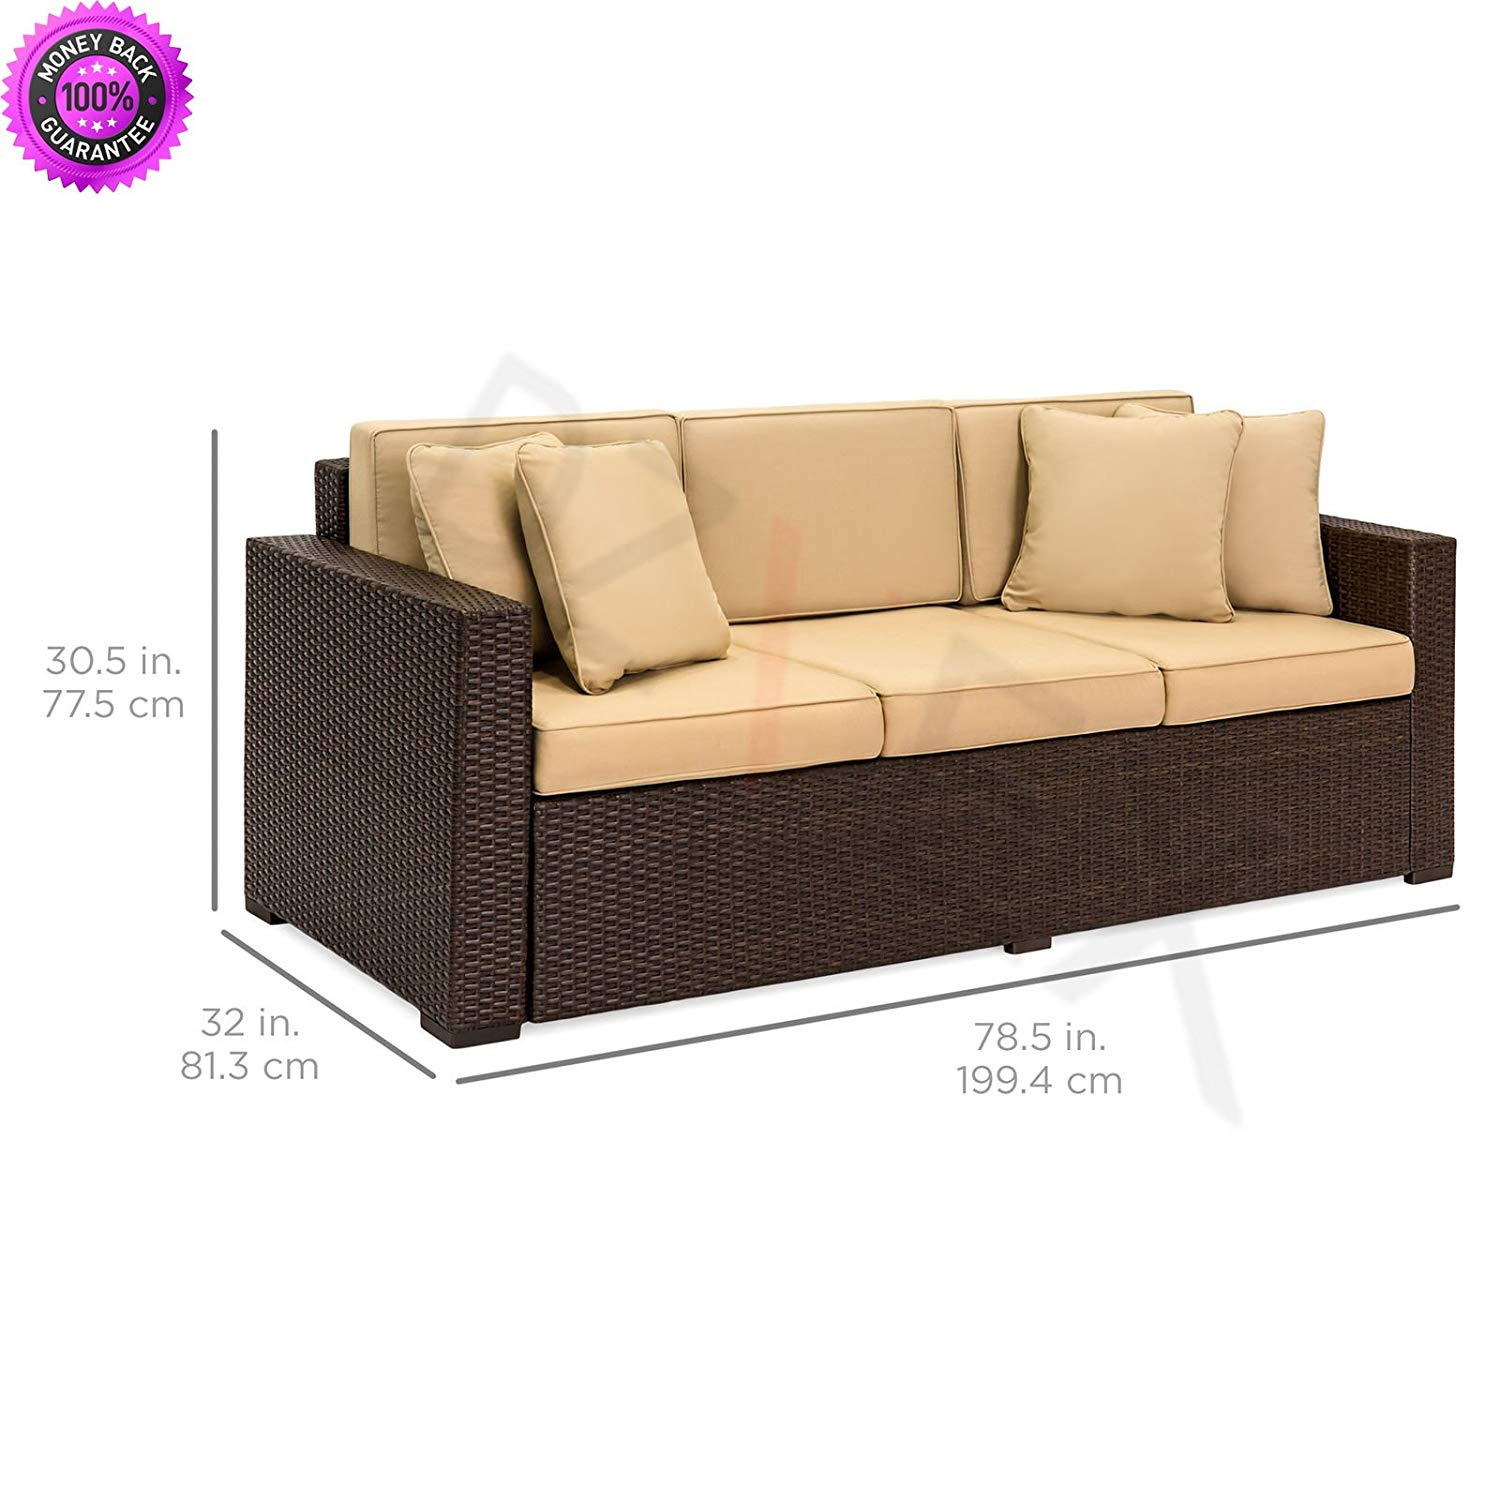 Get quotations · dzvex outdoor wicker patio furniture sofa 3 seater luxury comfort brown wicker couch and patio furniture